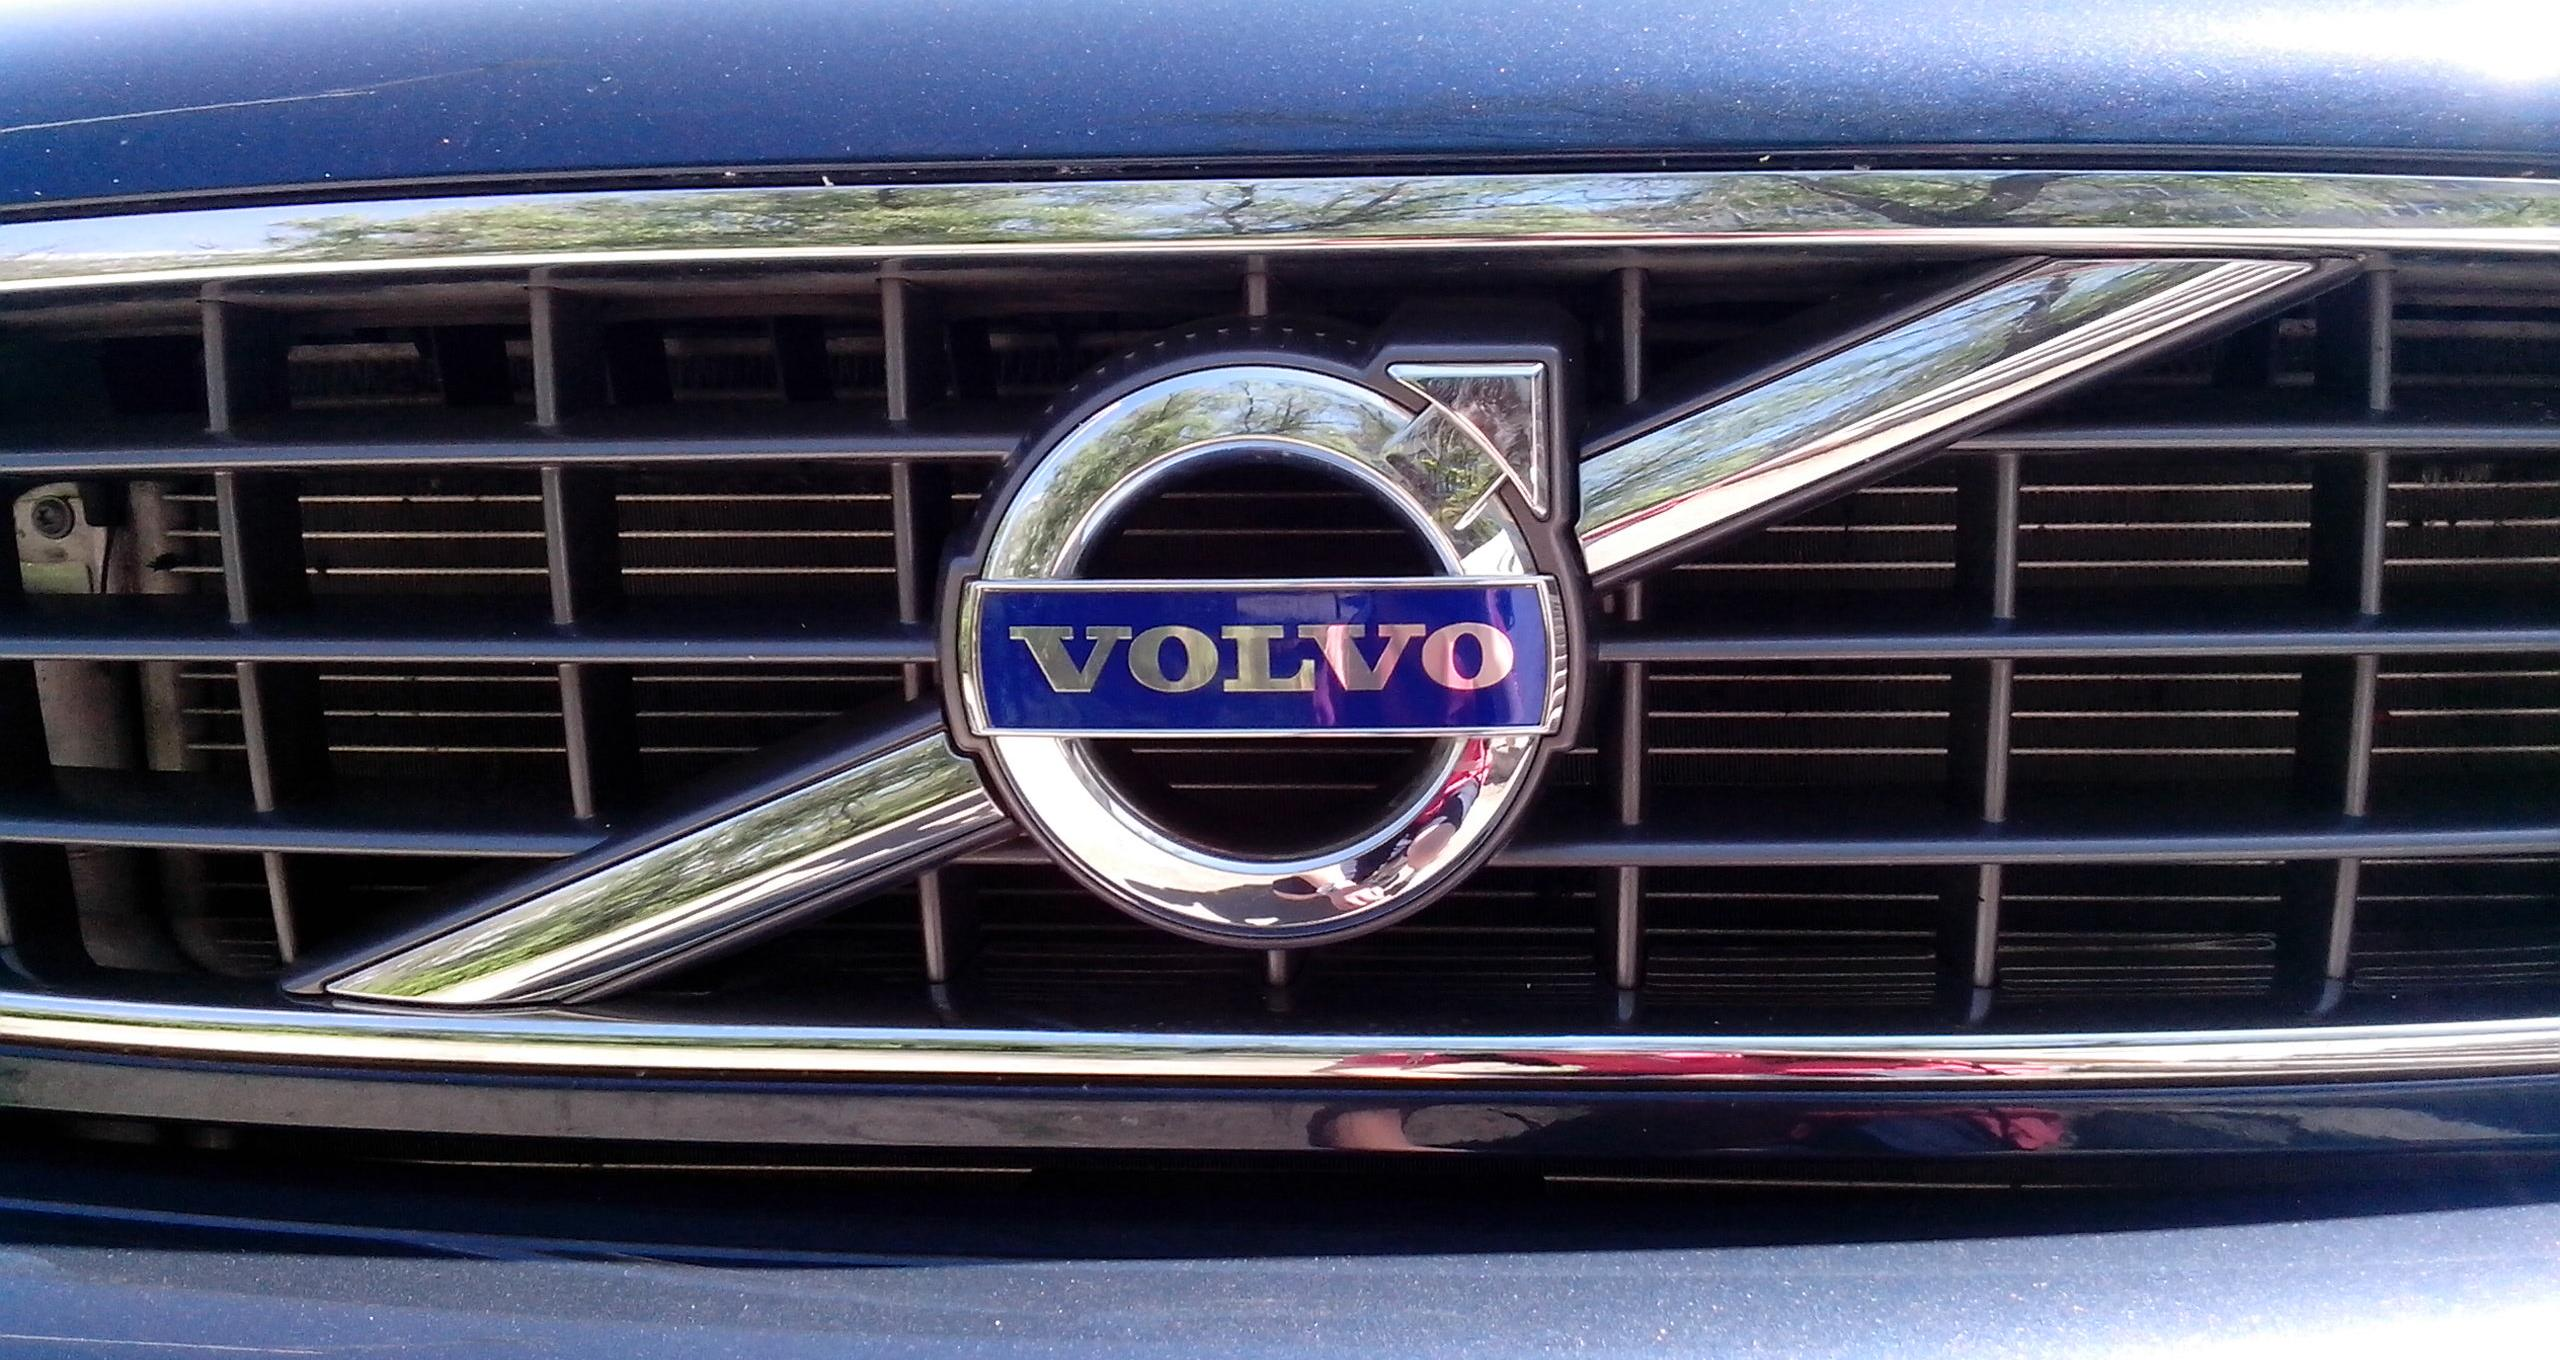 volvo logo on grill